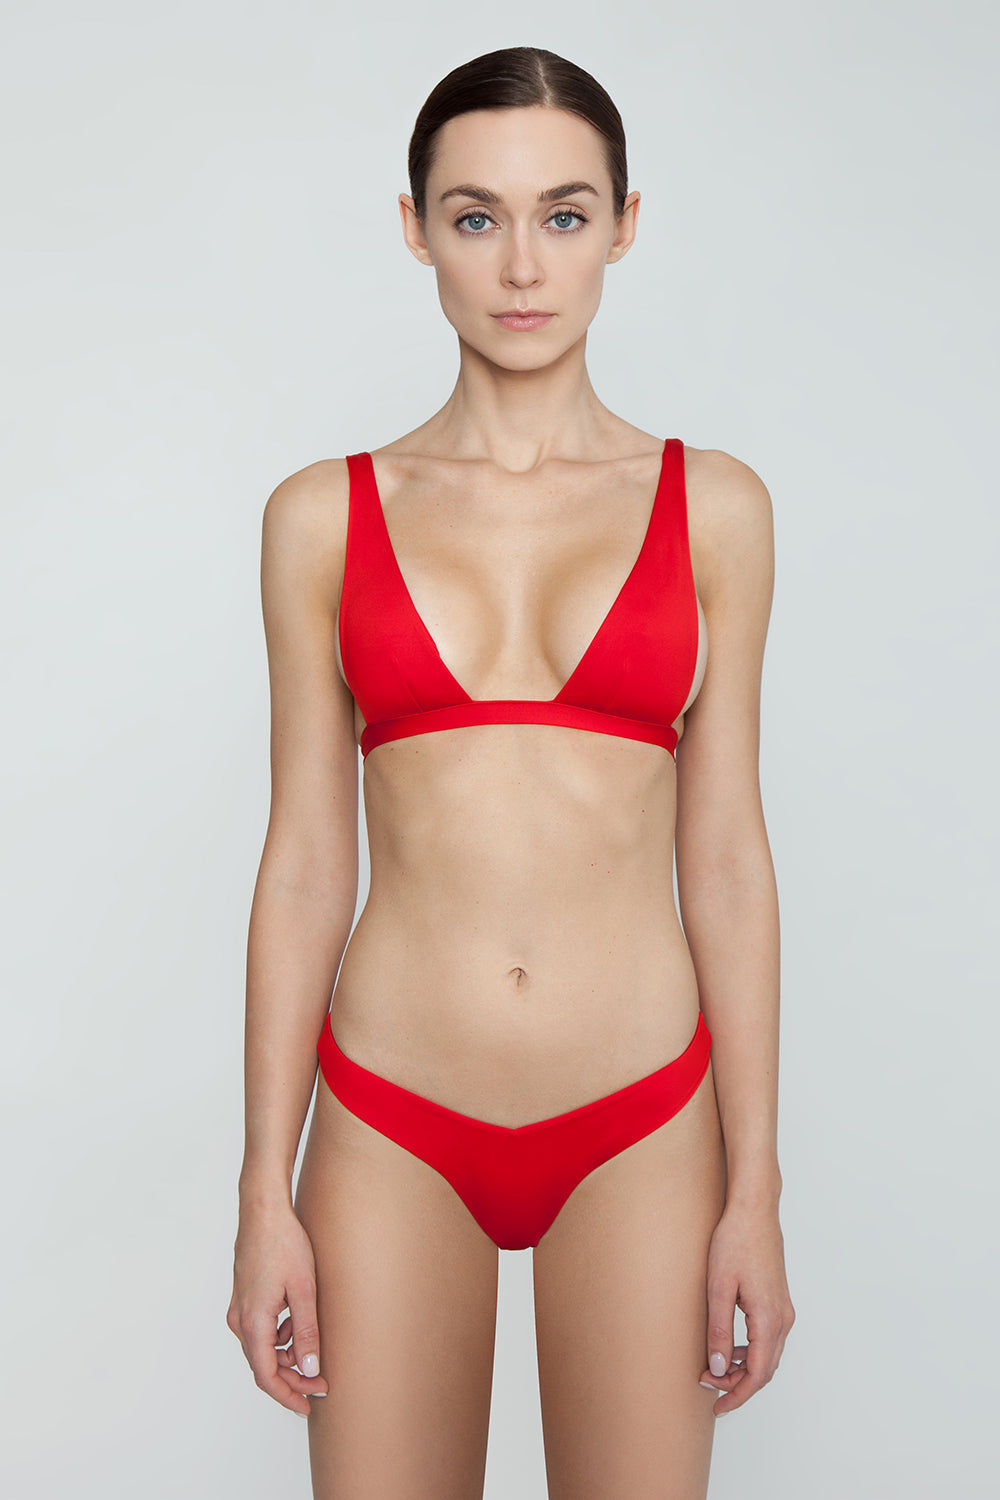 MONICA HANSEN BEACHWEAR Babe Watch Long Triangle Bikini Top - Red Bikini Top |  Red| Monica Hansen Babe Watch Long Triangle Bikini Top - Red. Features:  Small nickel colored metal clasp in black Double fabric on the inside instead of lining Italian fabric 85% Nylon 15% Elastane Manufactured in Italy Hand wash cold.  Dry Flat Front View